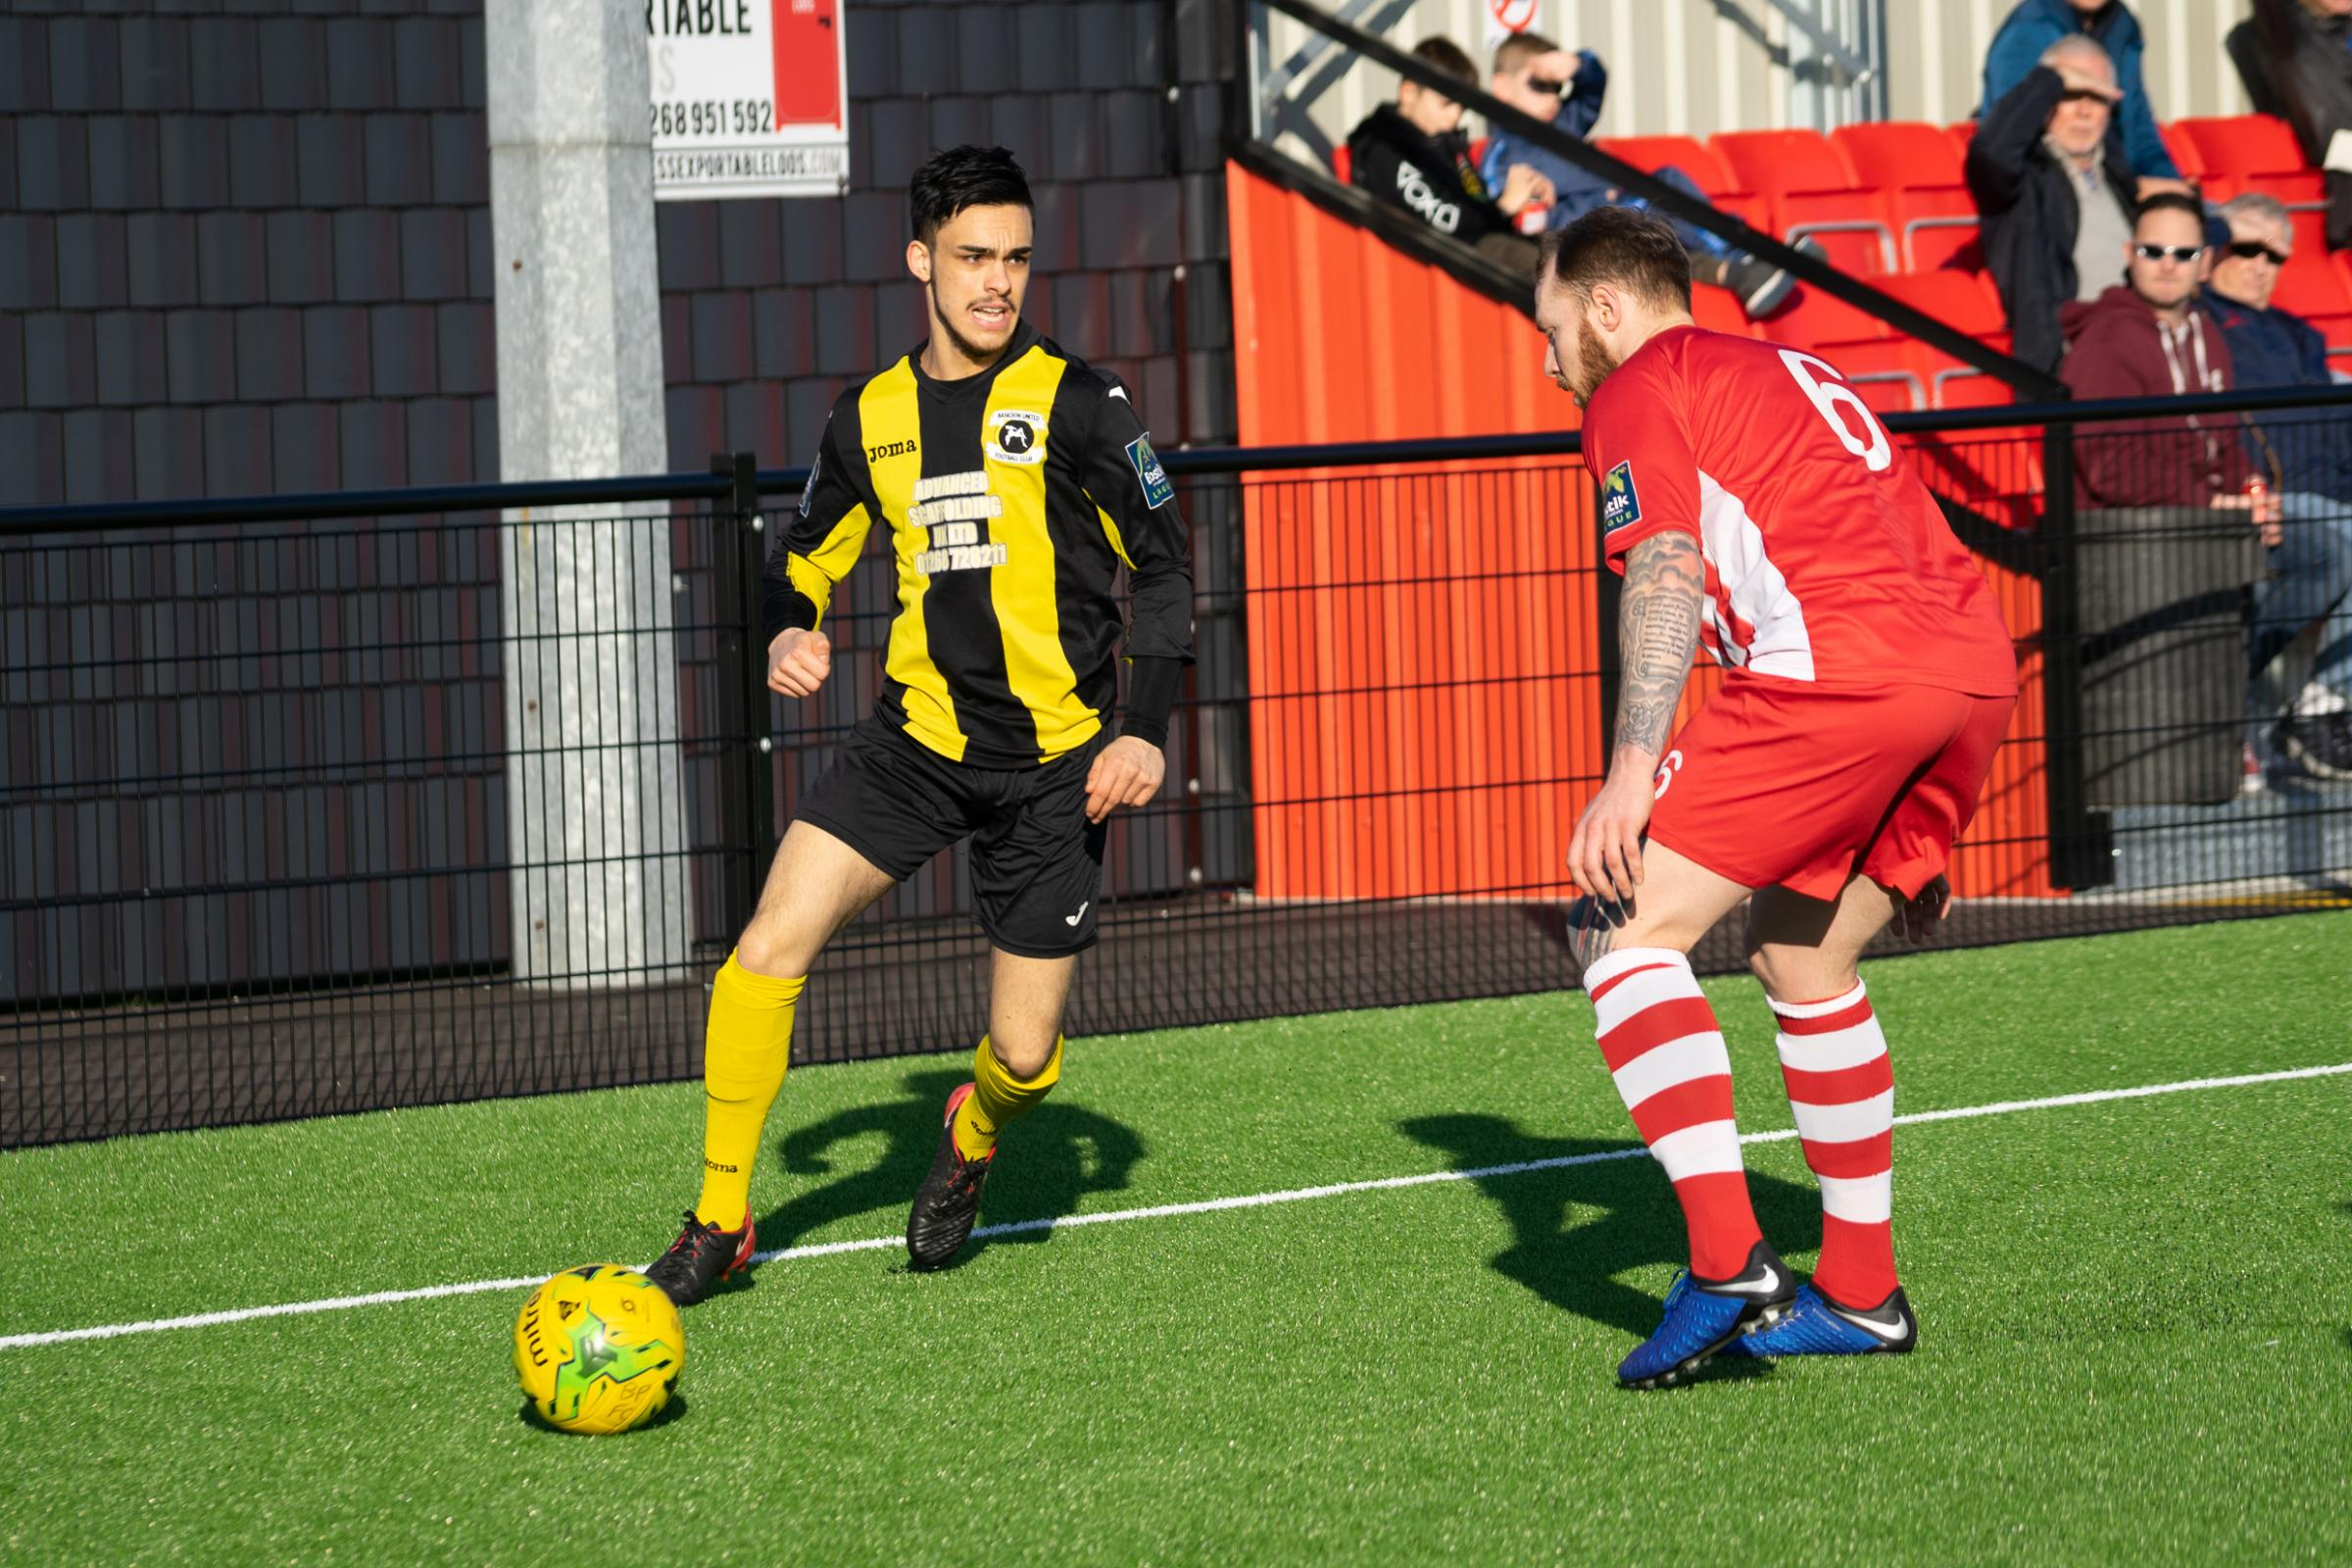 Hoping to grab a home win - Basildon United and Daniel Cheema Picture: LUAN MARSHALL